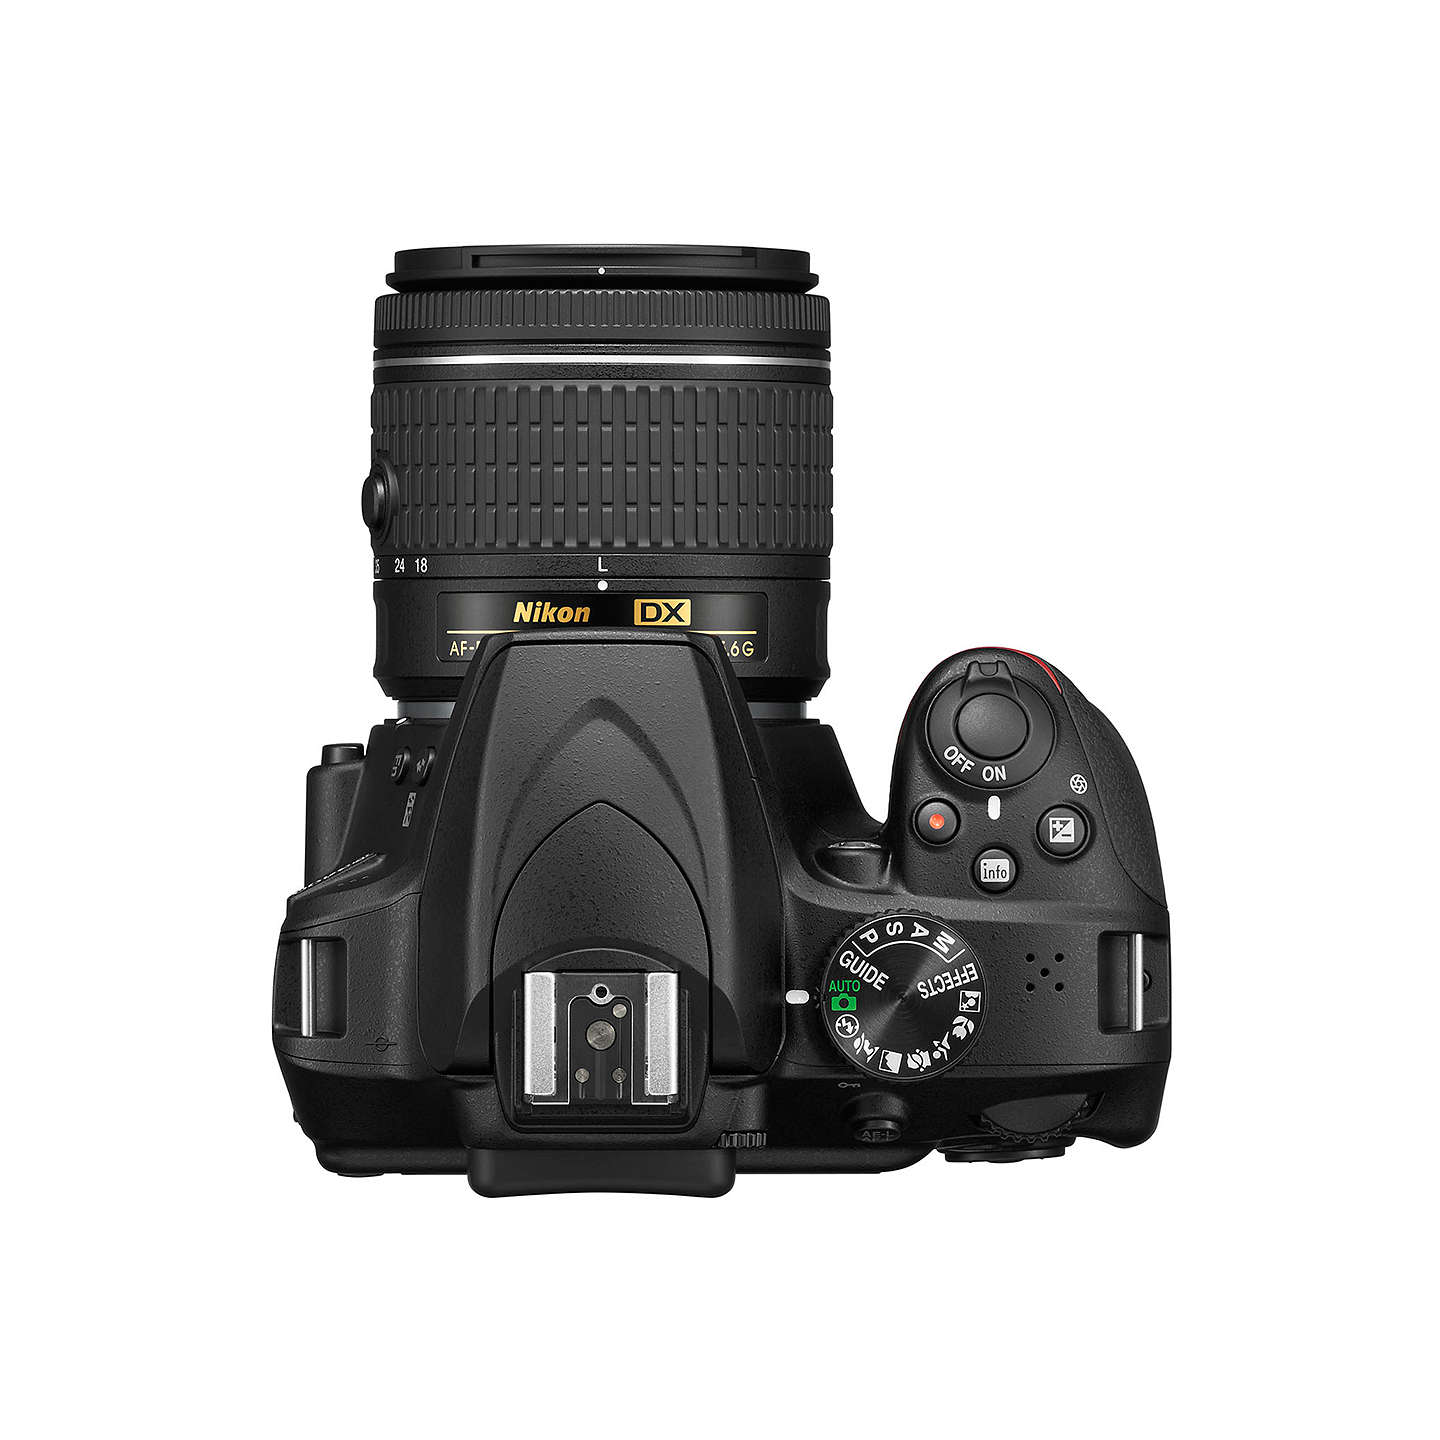 "BuyNikon D3400 Digital SLR Camera with 18-55mm Lens, HD 1080p, 24.2MP, Optical ViewFinder, 3"" LCD Monitor, Black Online at johnlewis.com"